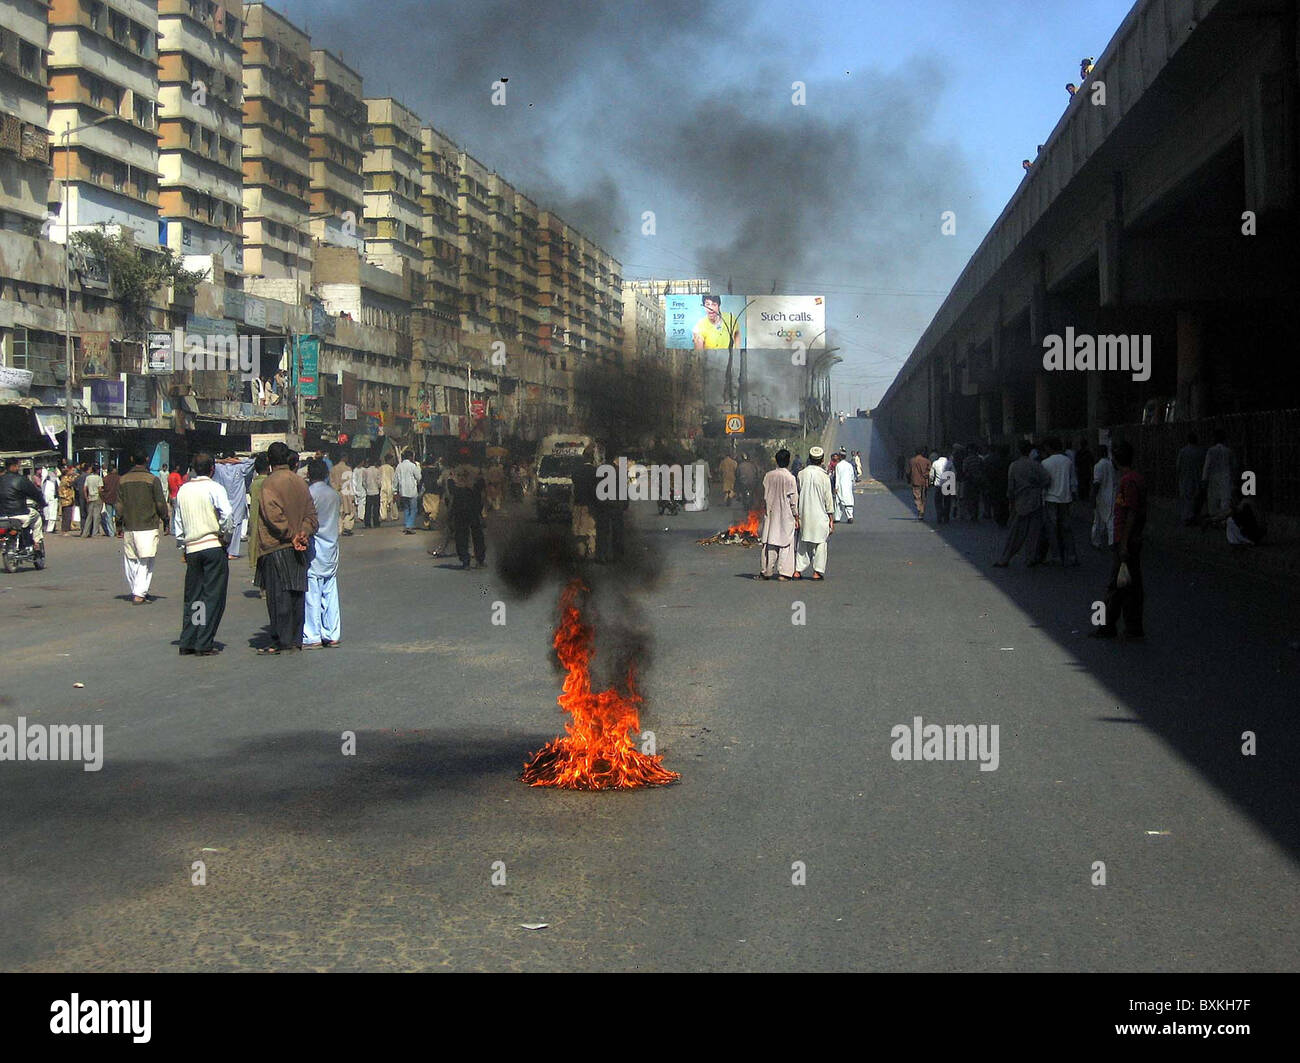 Residents of Liaquatabad stand near burning tyres as they are protesting against disconnection of the electricity - Stock Image